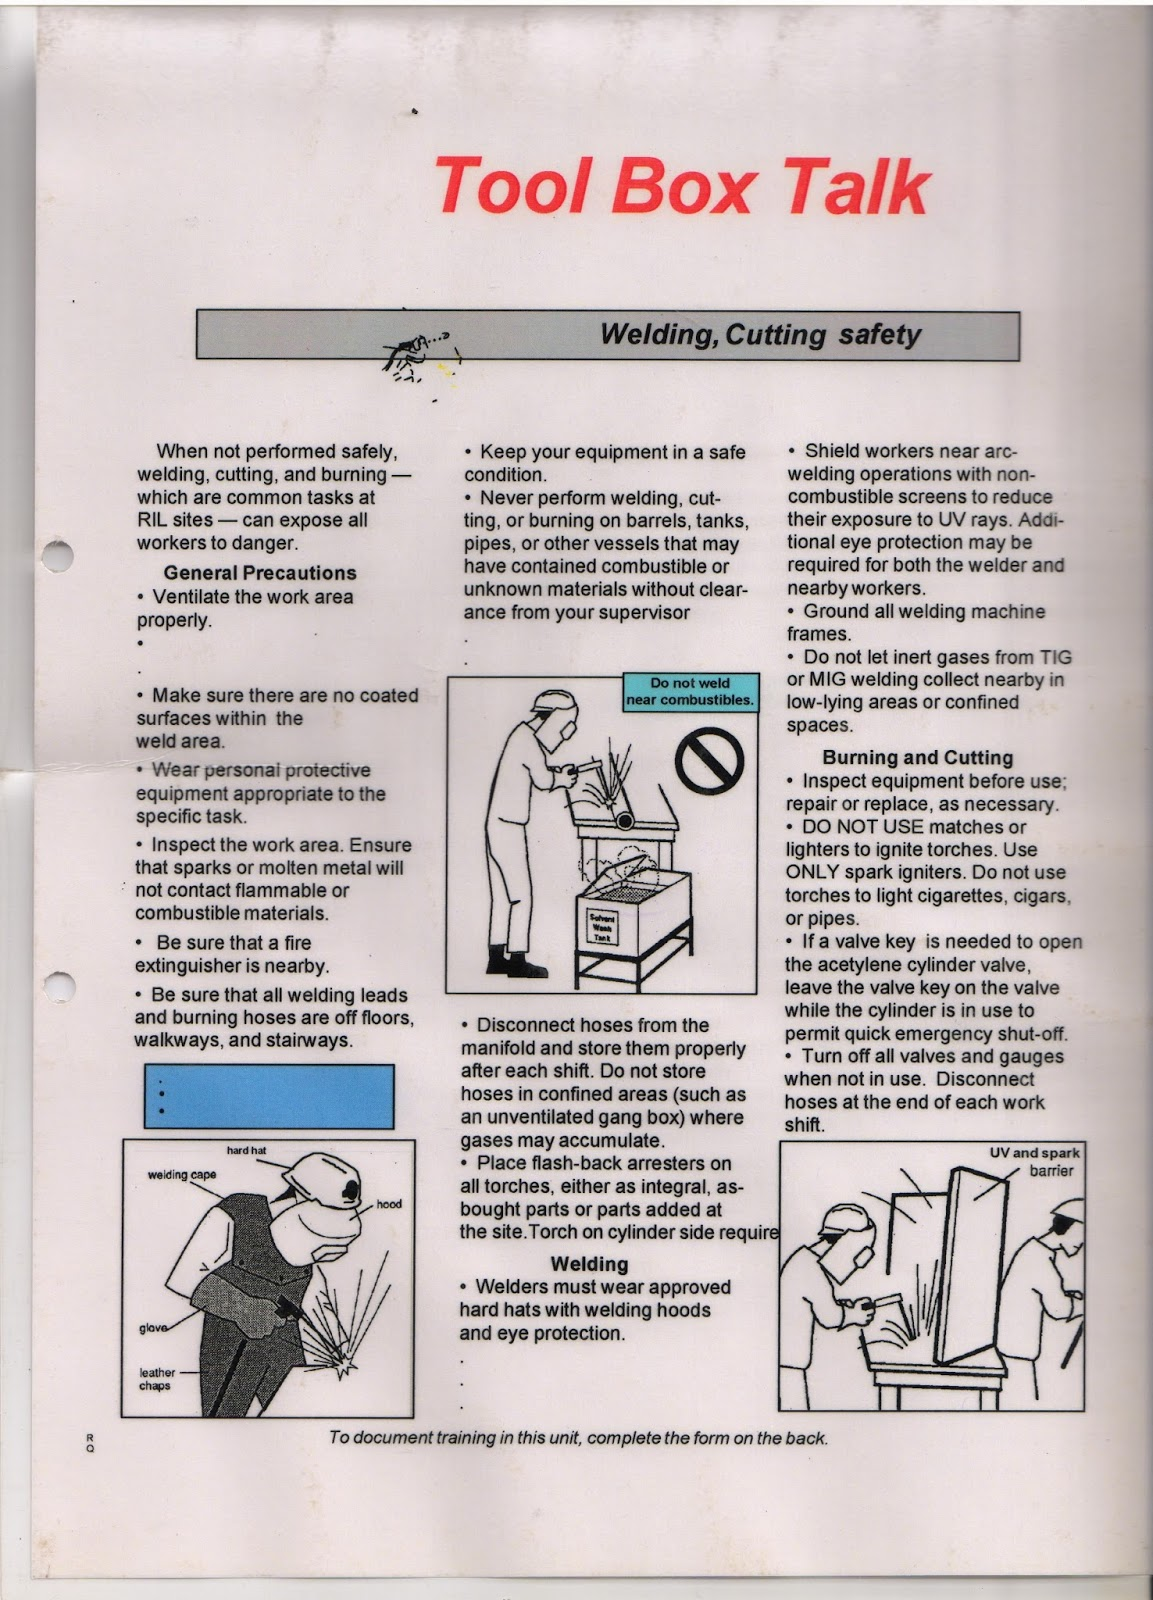 HEALTH AND SAFETY TOOLBOX TALKS PDF DOWNLOAD